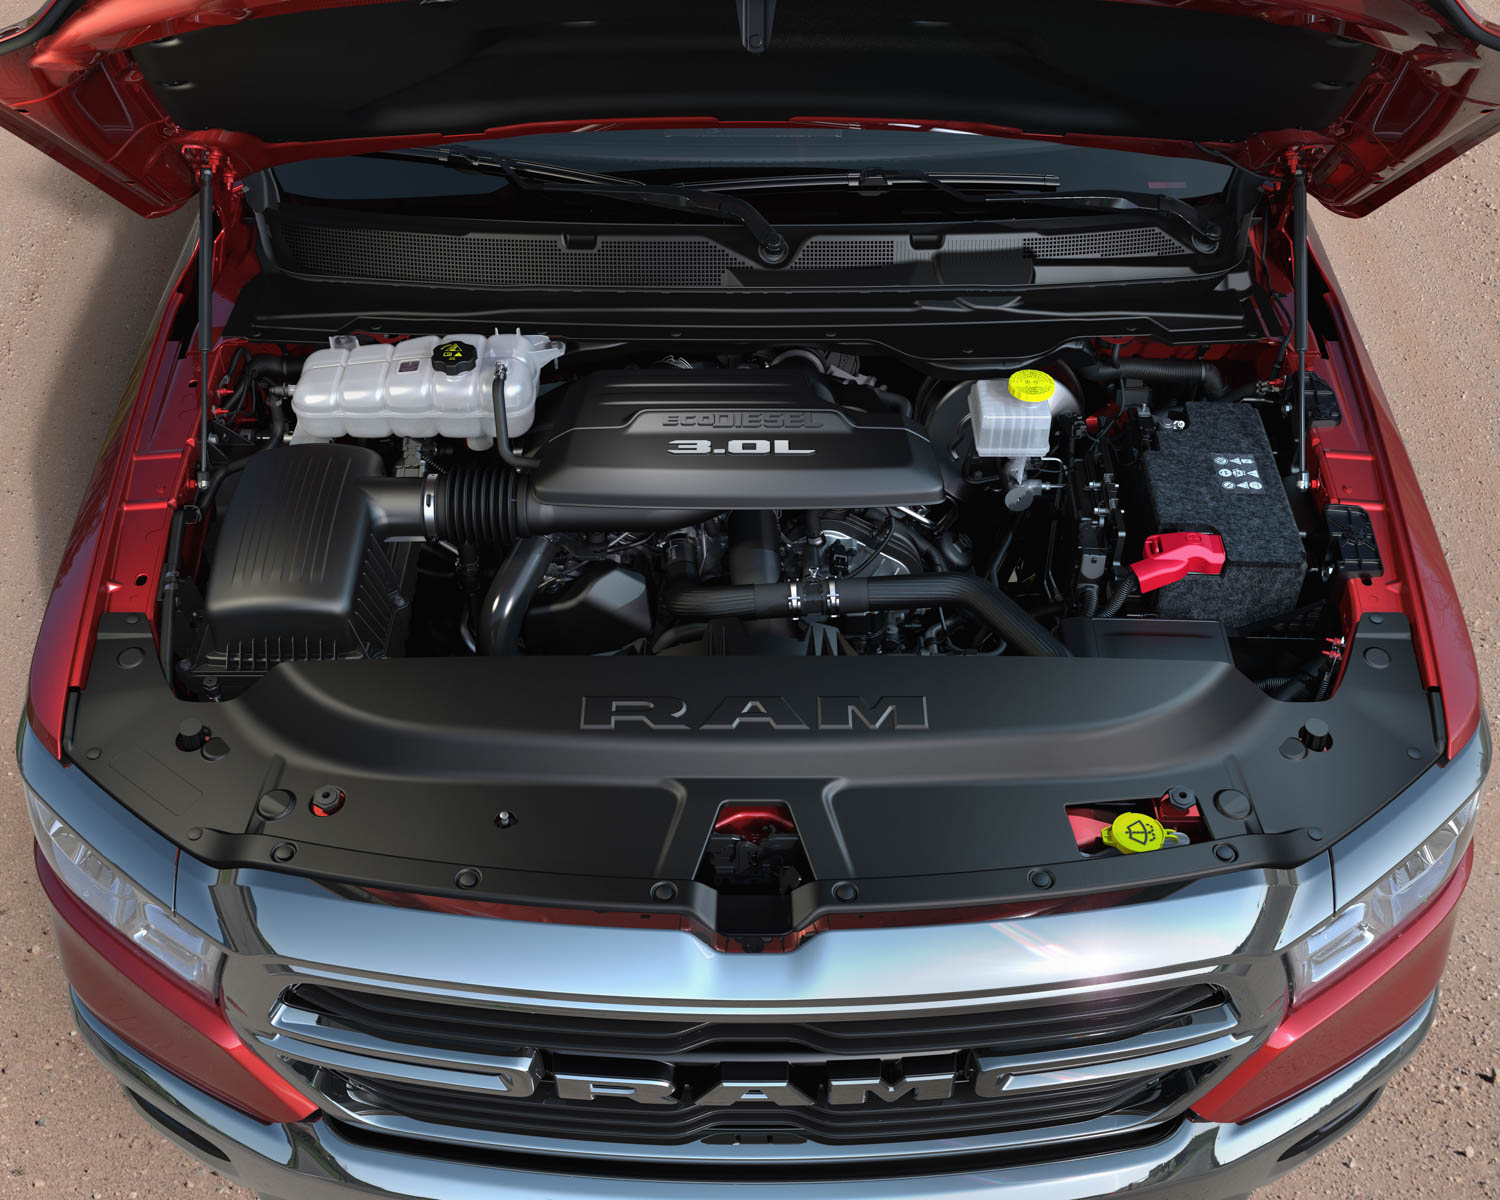 2020 Ram 1500 EcoDiesel under the hood